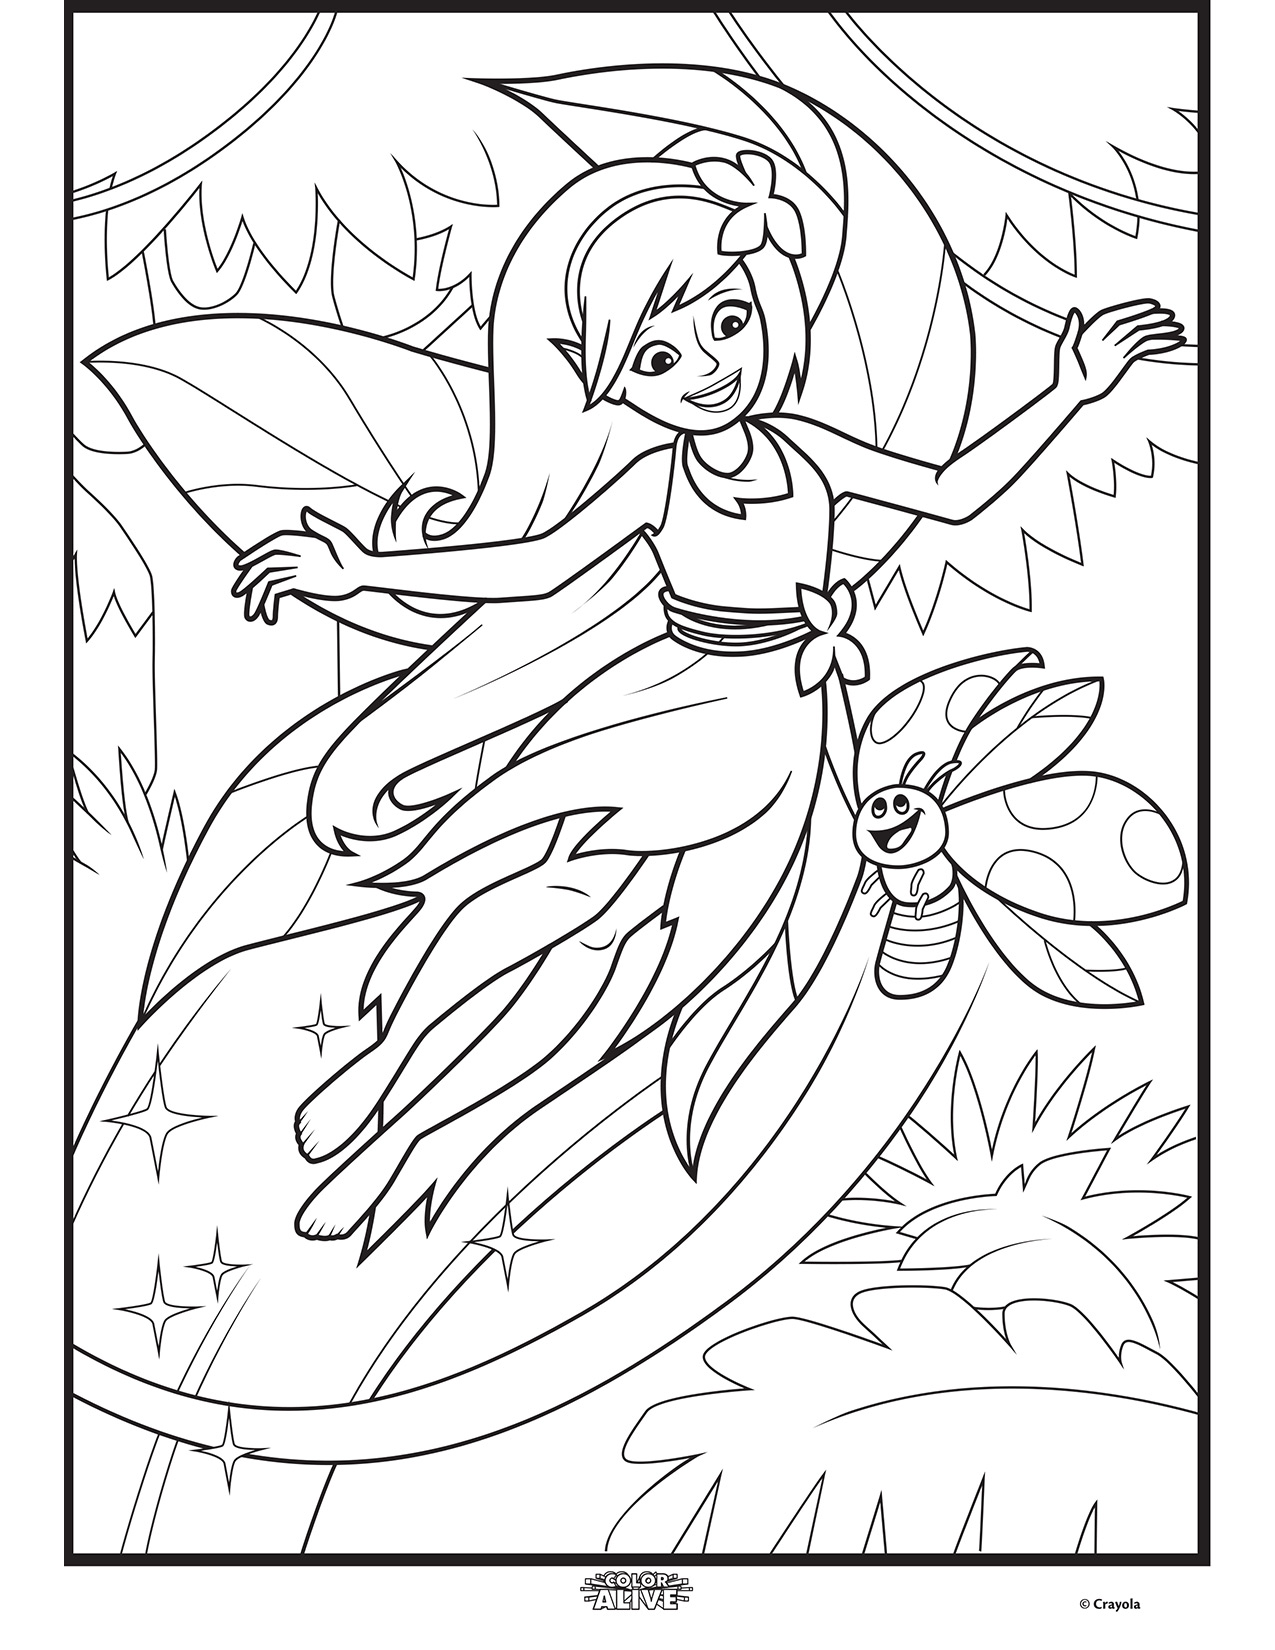 Crayola Coloring Pages Autumn Leaves For Kids Printable Free